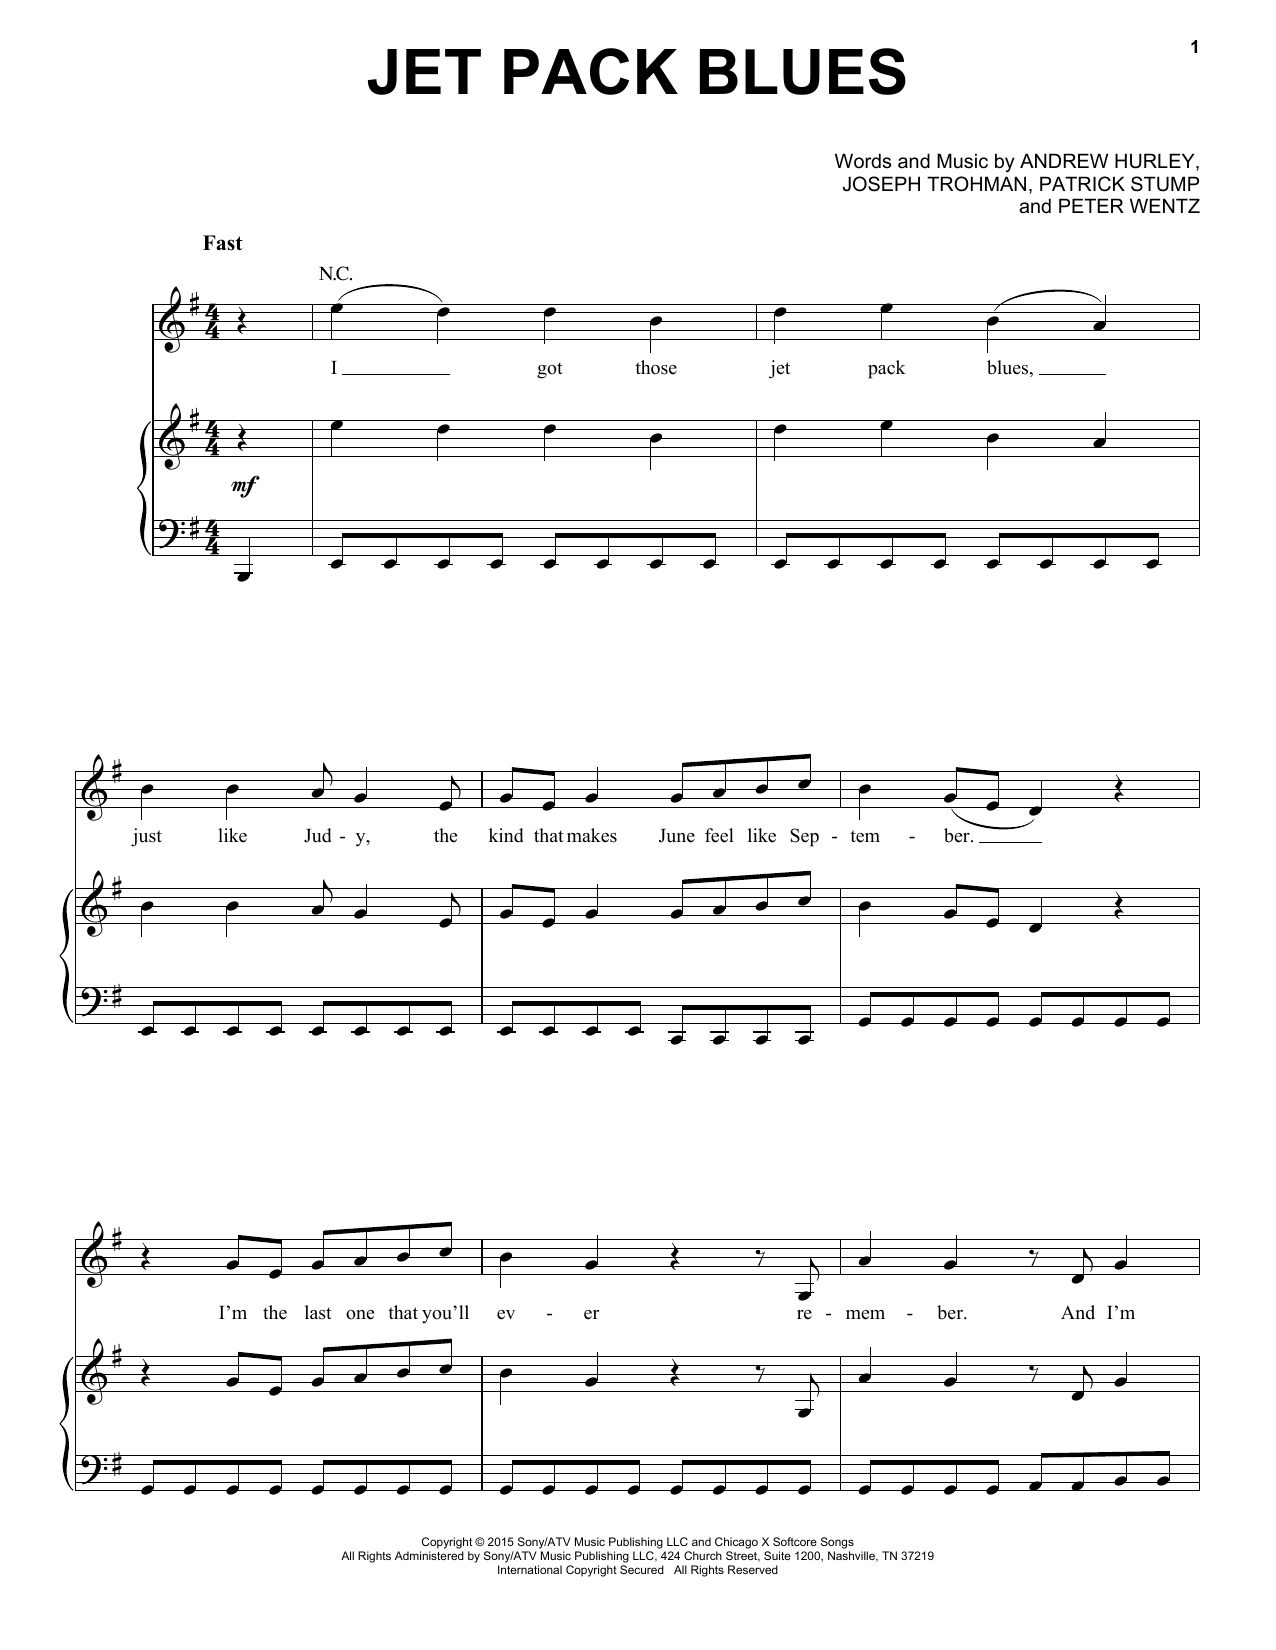 Jet Pack Blues sheet music by Fall Out Boy (Piano, Vocal u0026 Guitar (Right-Hand Melody) u2013 160910)